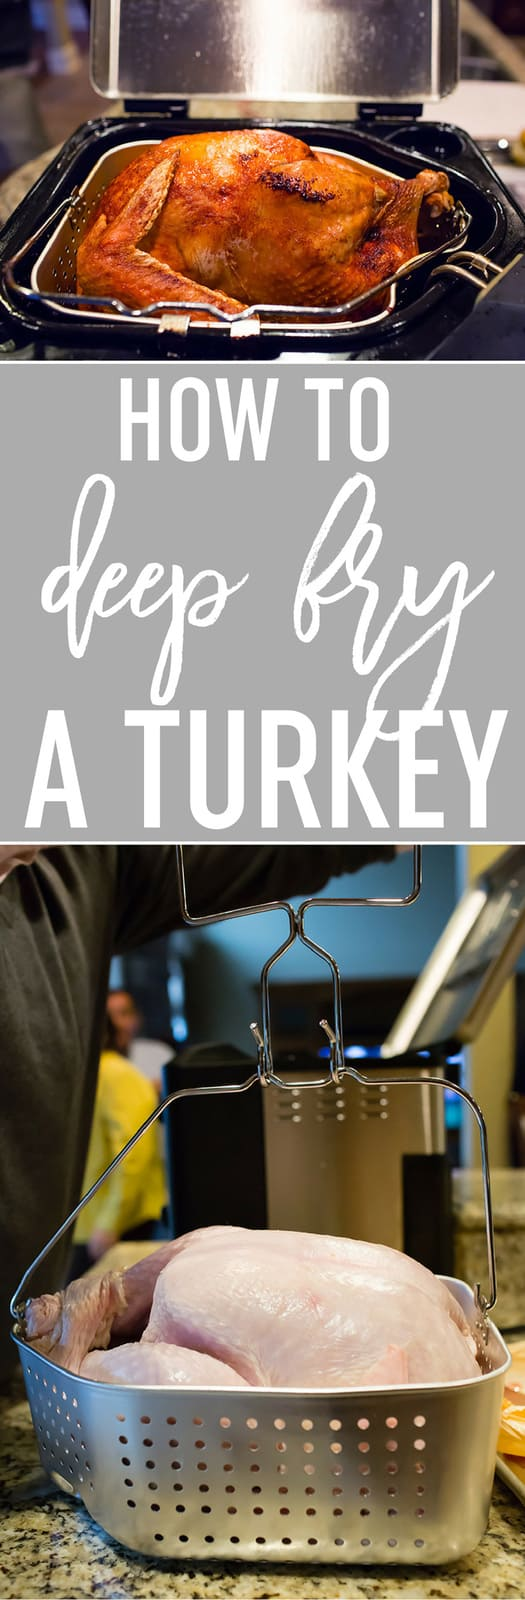 How To Deep Fry a Turkey - A comprehensive post on everything you've ever wanted to know about deep frying a turkey - the equipment, oil, brines, rubs, times, and even more tips! #thanksgiving #turkey #cooking #recipes